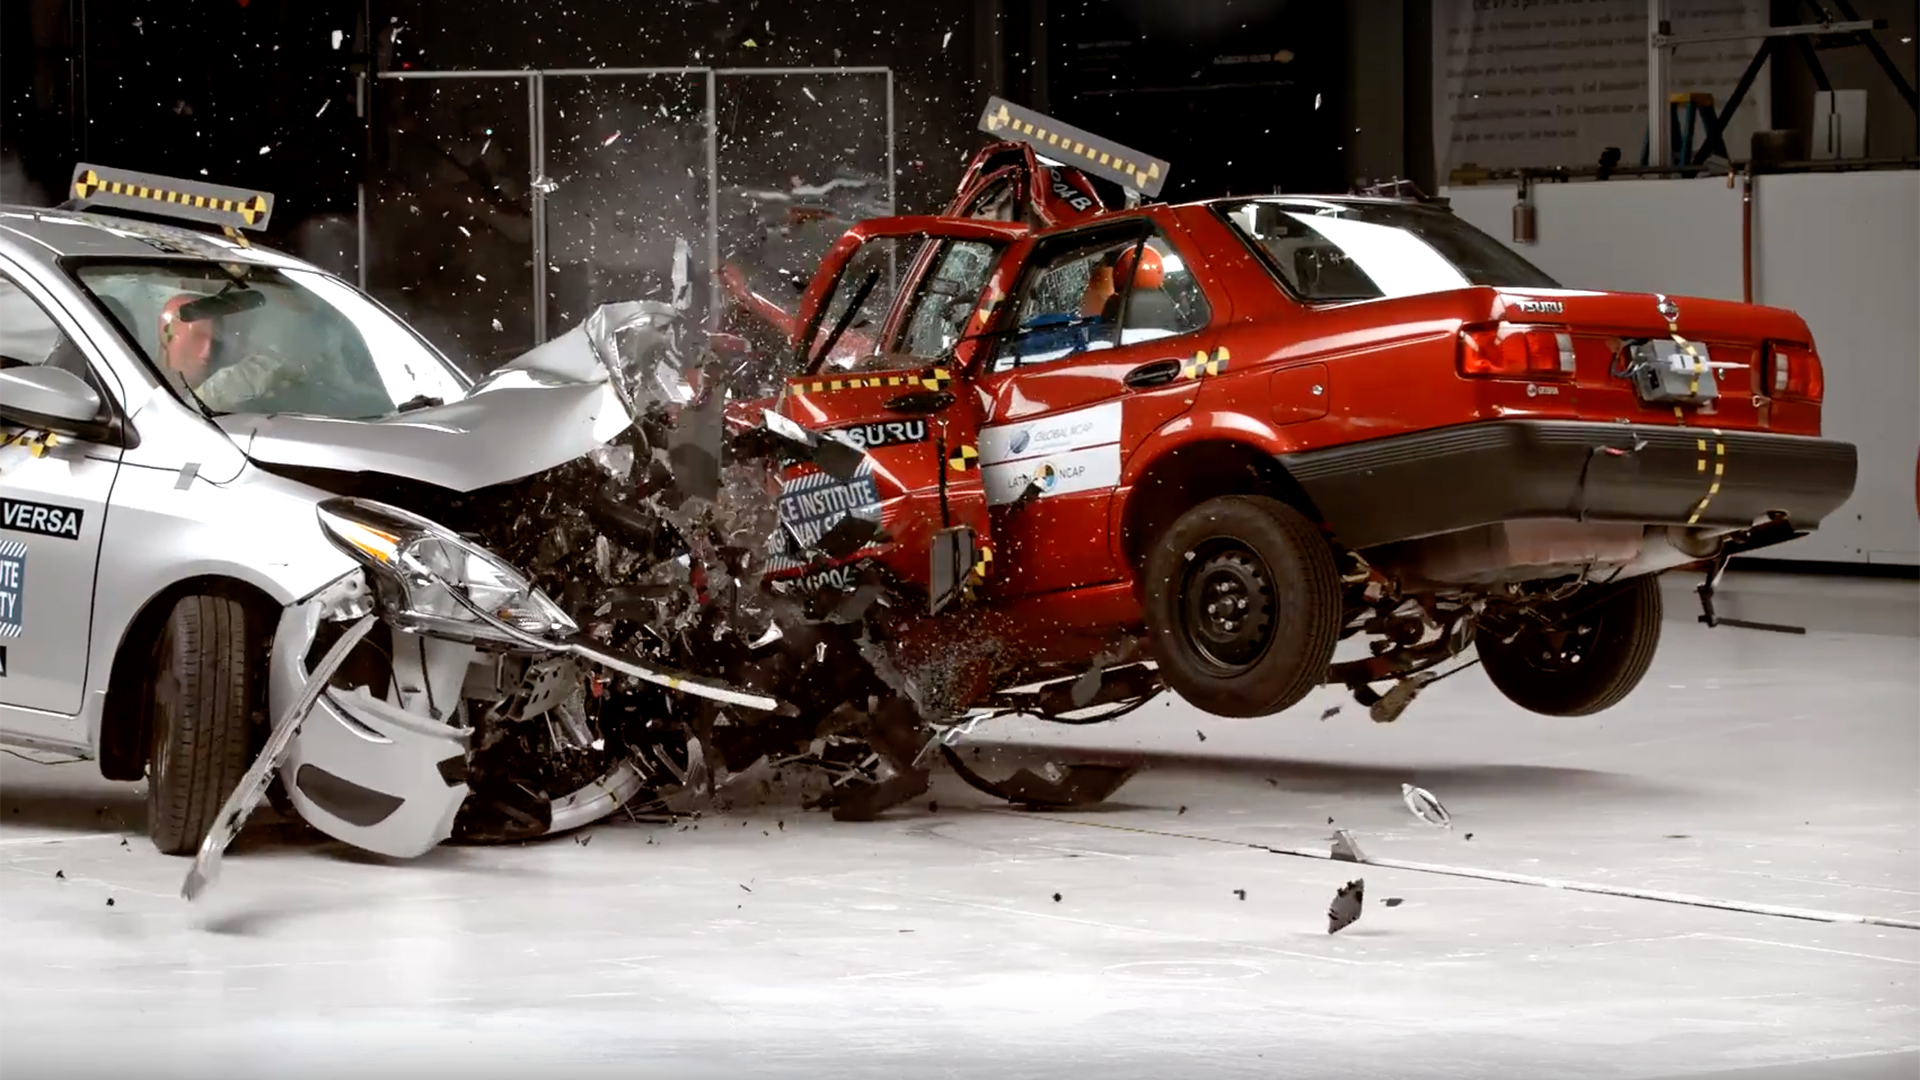 Nissan Tsuru Vs. Sentra Crash Test Shows Why You Shouldn't ...